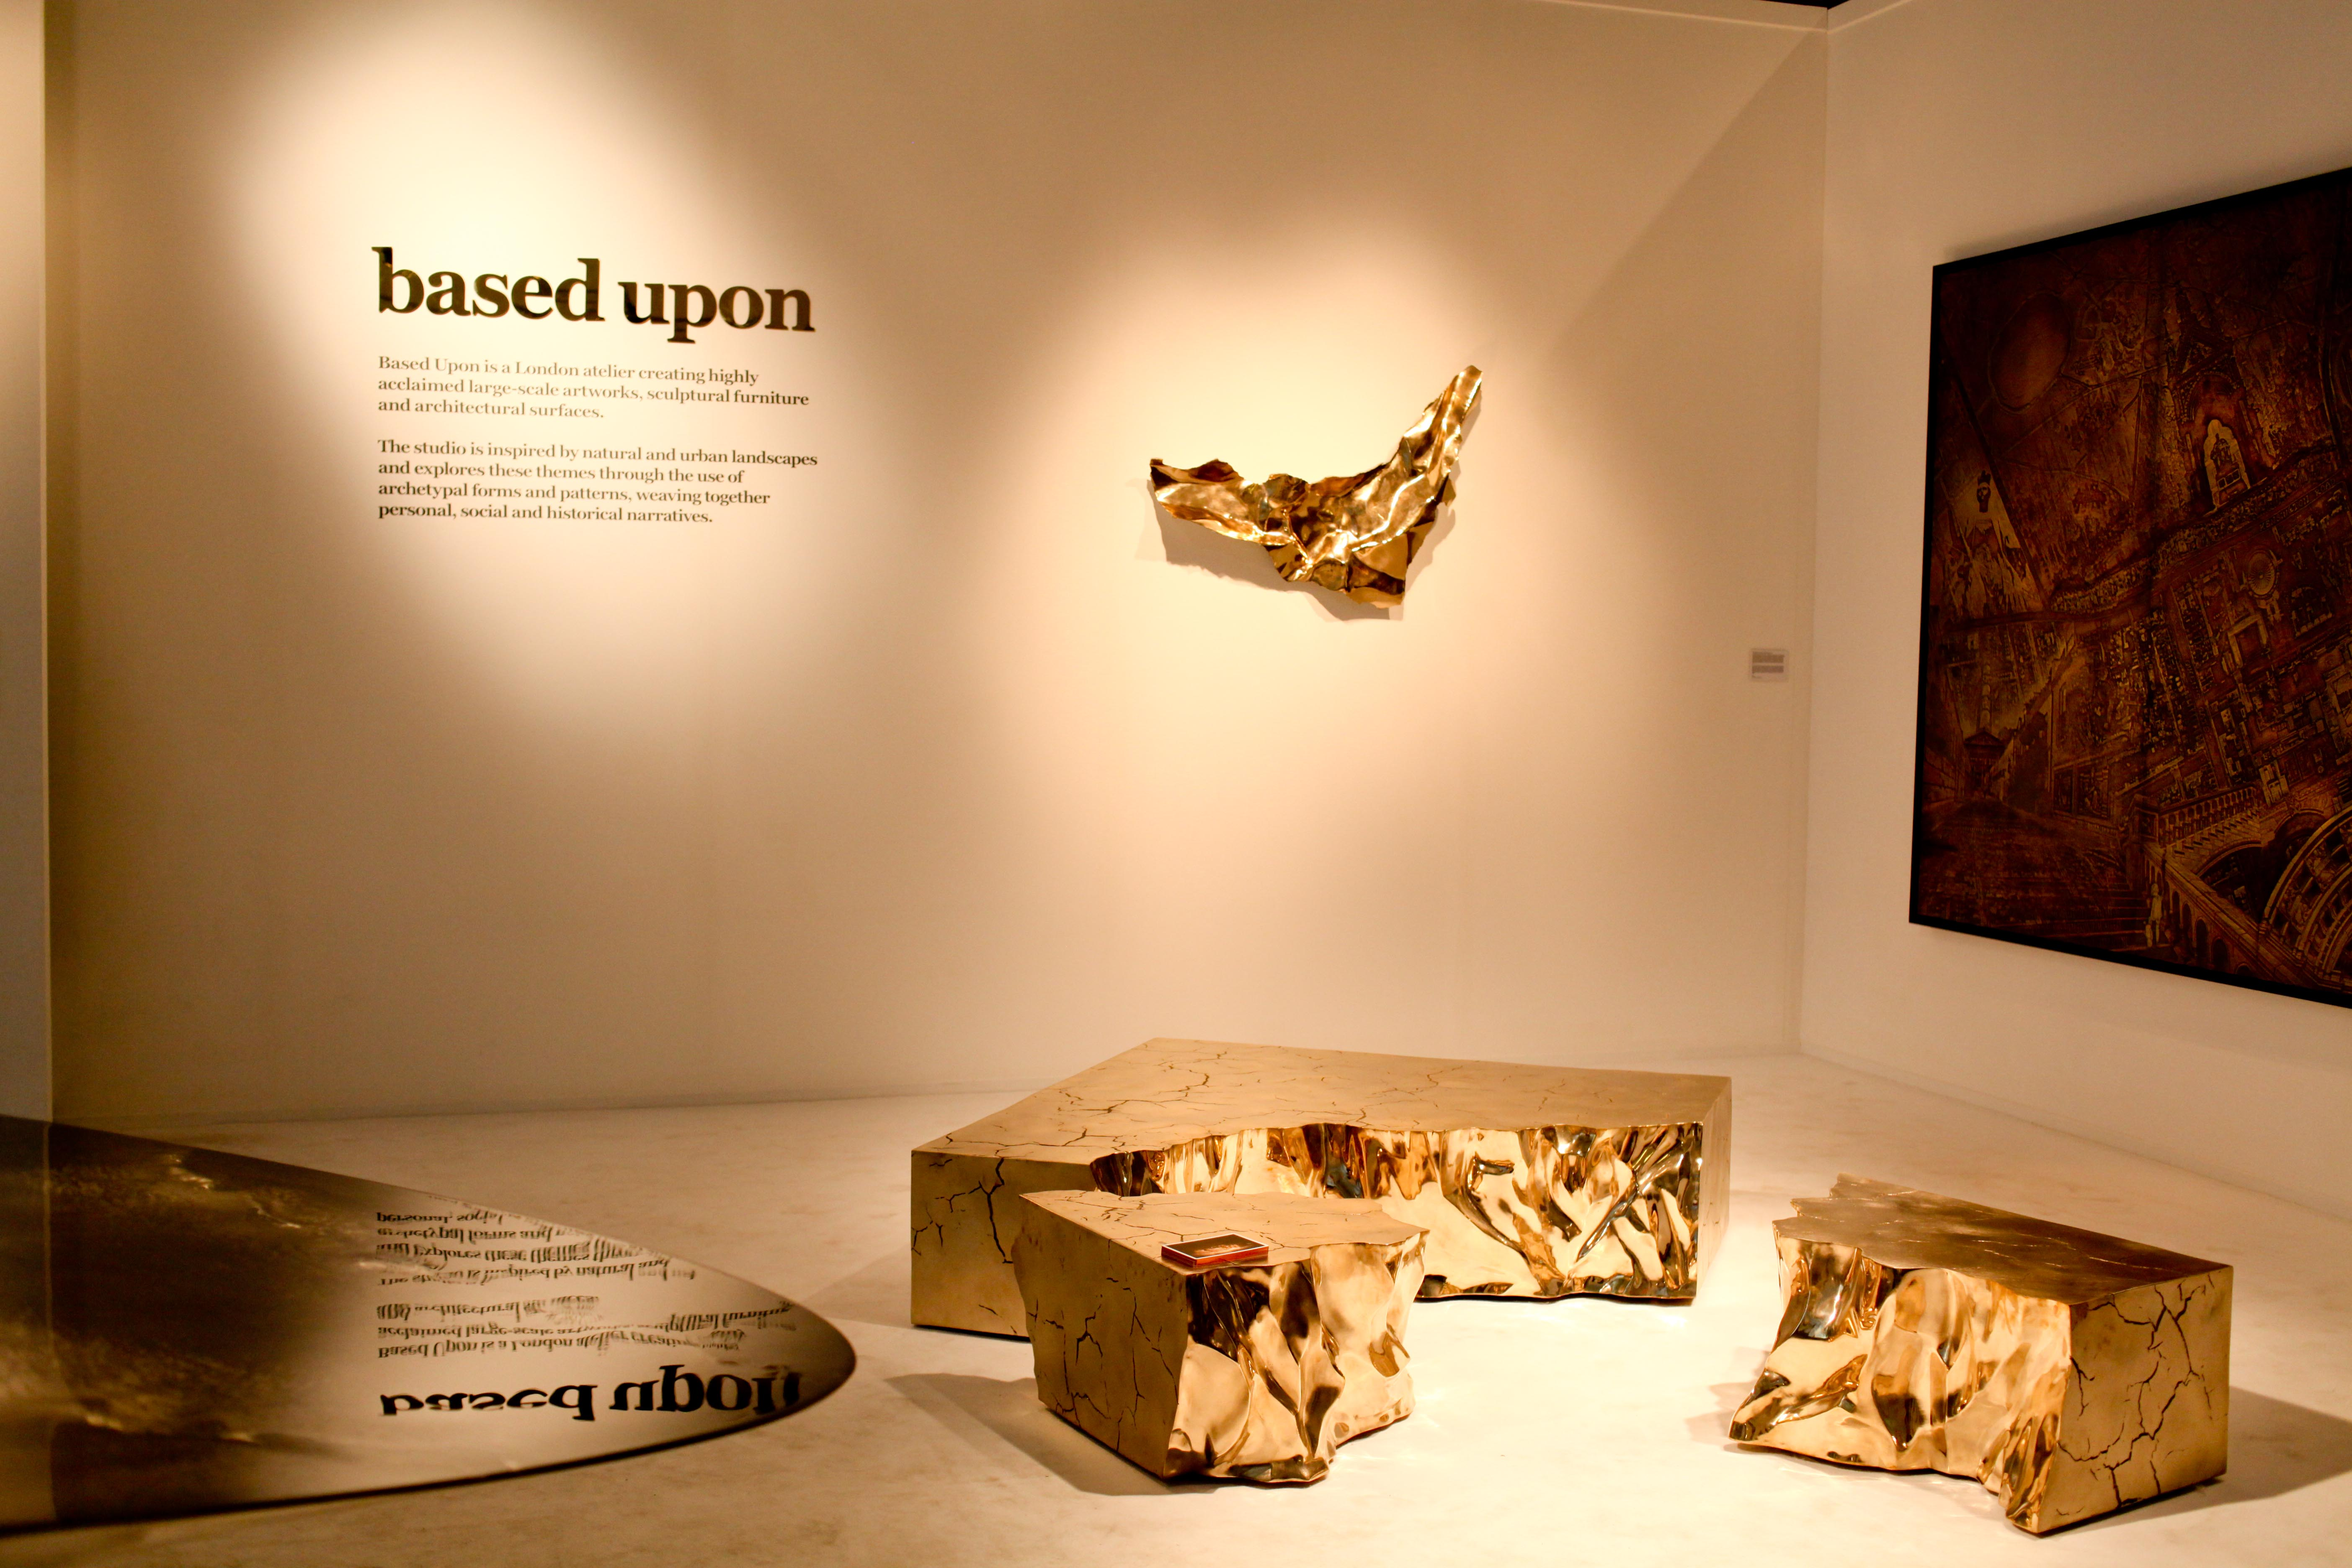 Items on display by Based Upon at Design Days Dubai 2013.